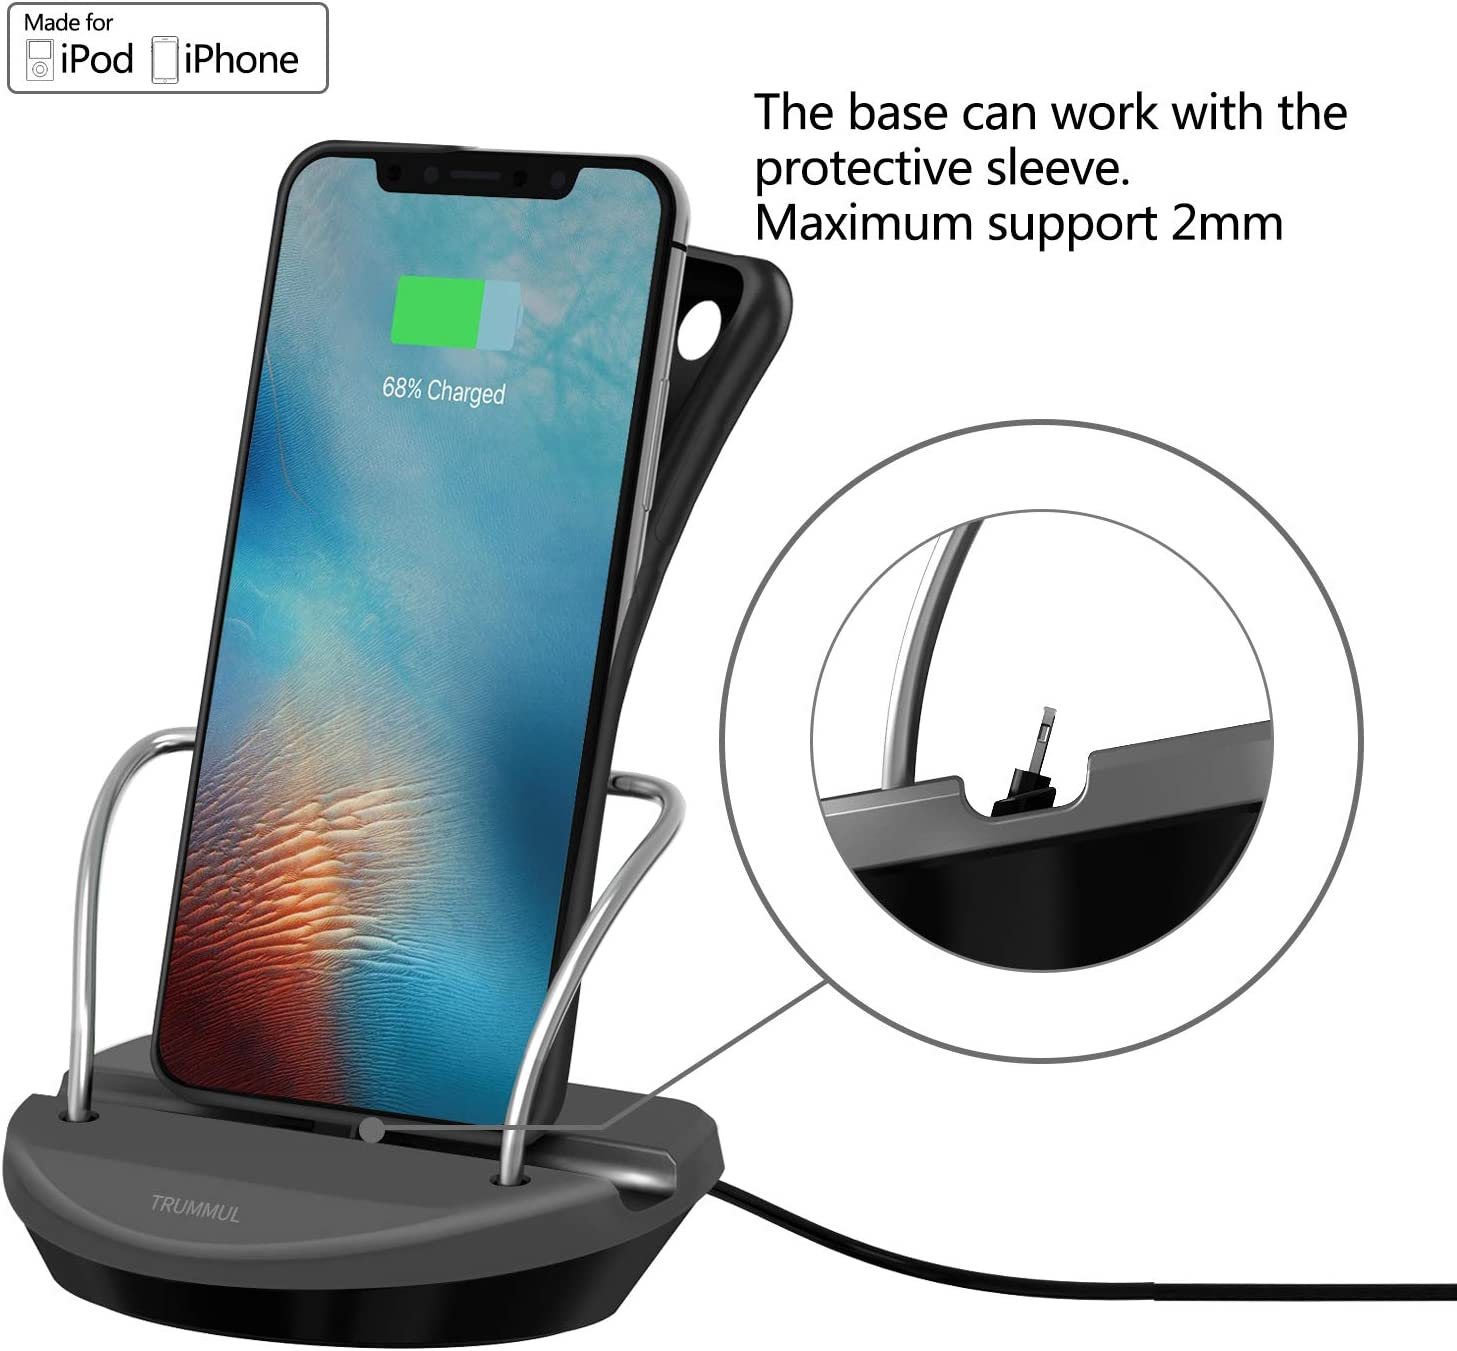 TRUMMUL Office Base Compatible for i-Phone Charger Dock Desktop Charging Stand Station Supports 0-2mm Cases